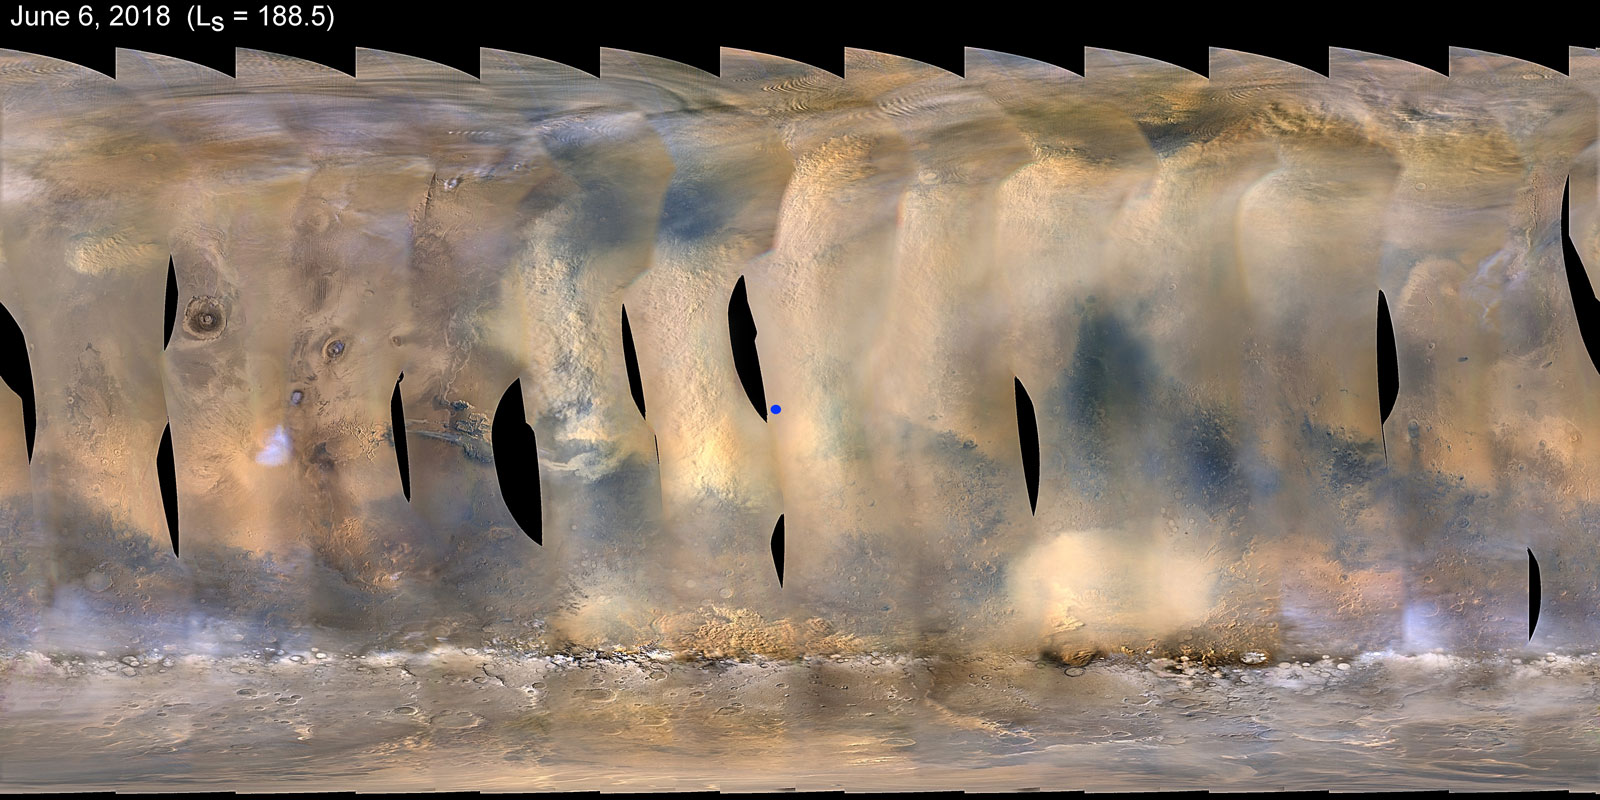 This global map of Mars shows a growing dust storm as of June 6, 2018. The map was produced by the Mars Color Imager (MARCI) camera on NASA's Mars Reconnaissance Orbiter spacecraft.